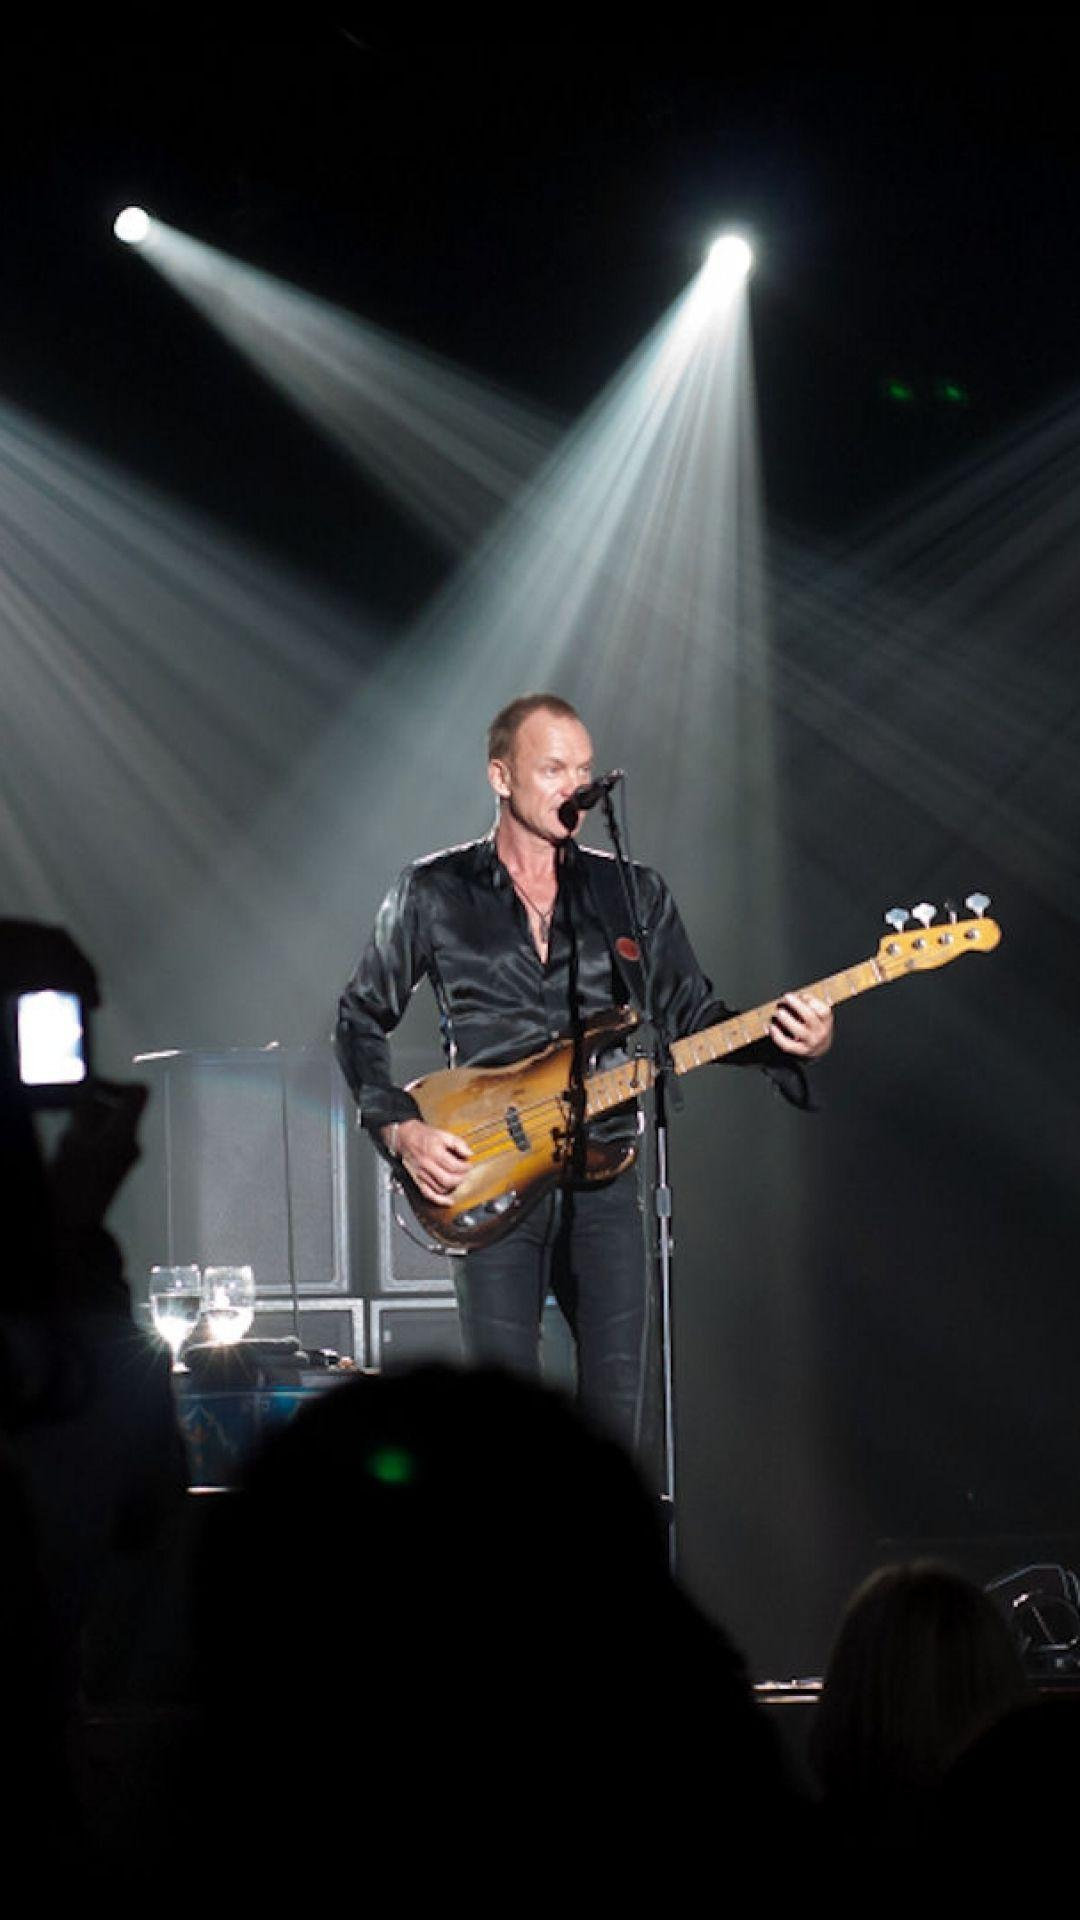 Download Wallpaper 1080x1920 Sting, Light, Fan, Scene, Show Sony ...